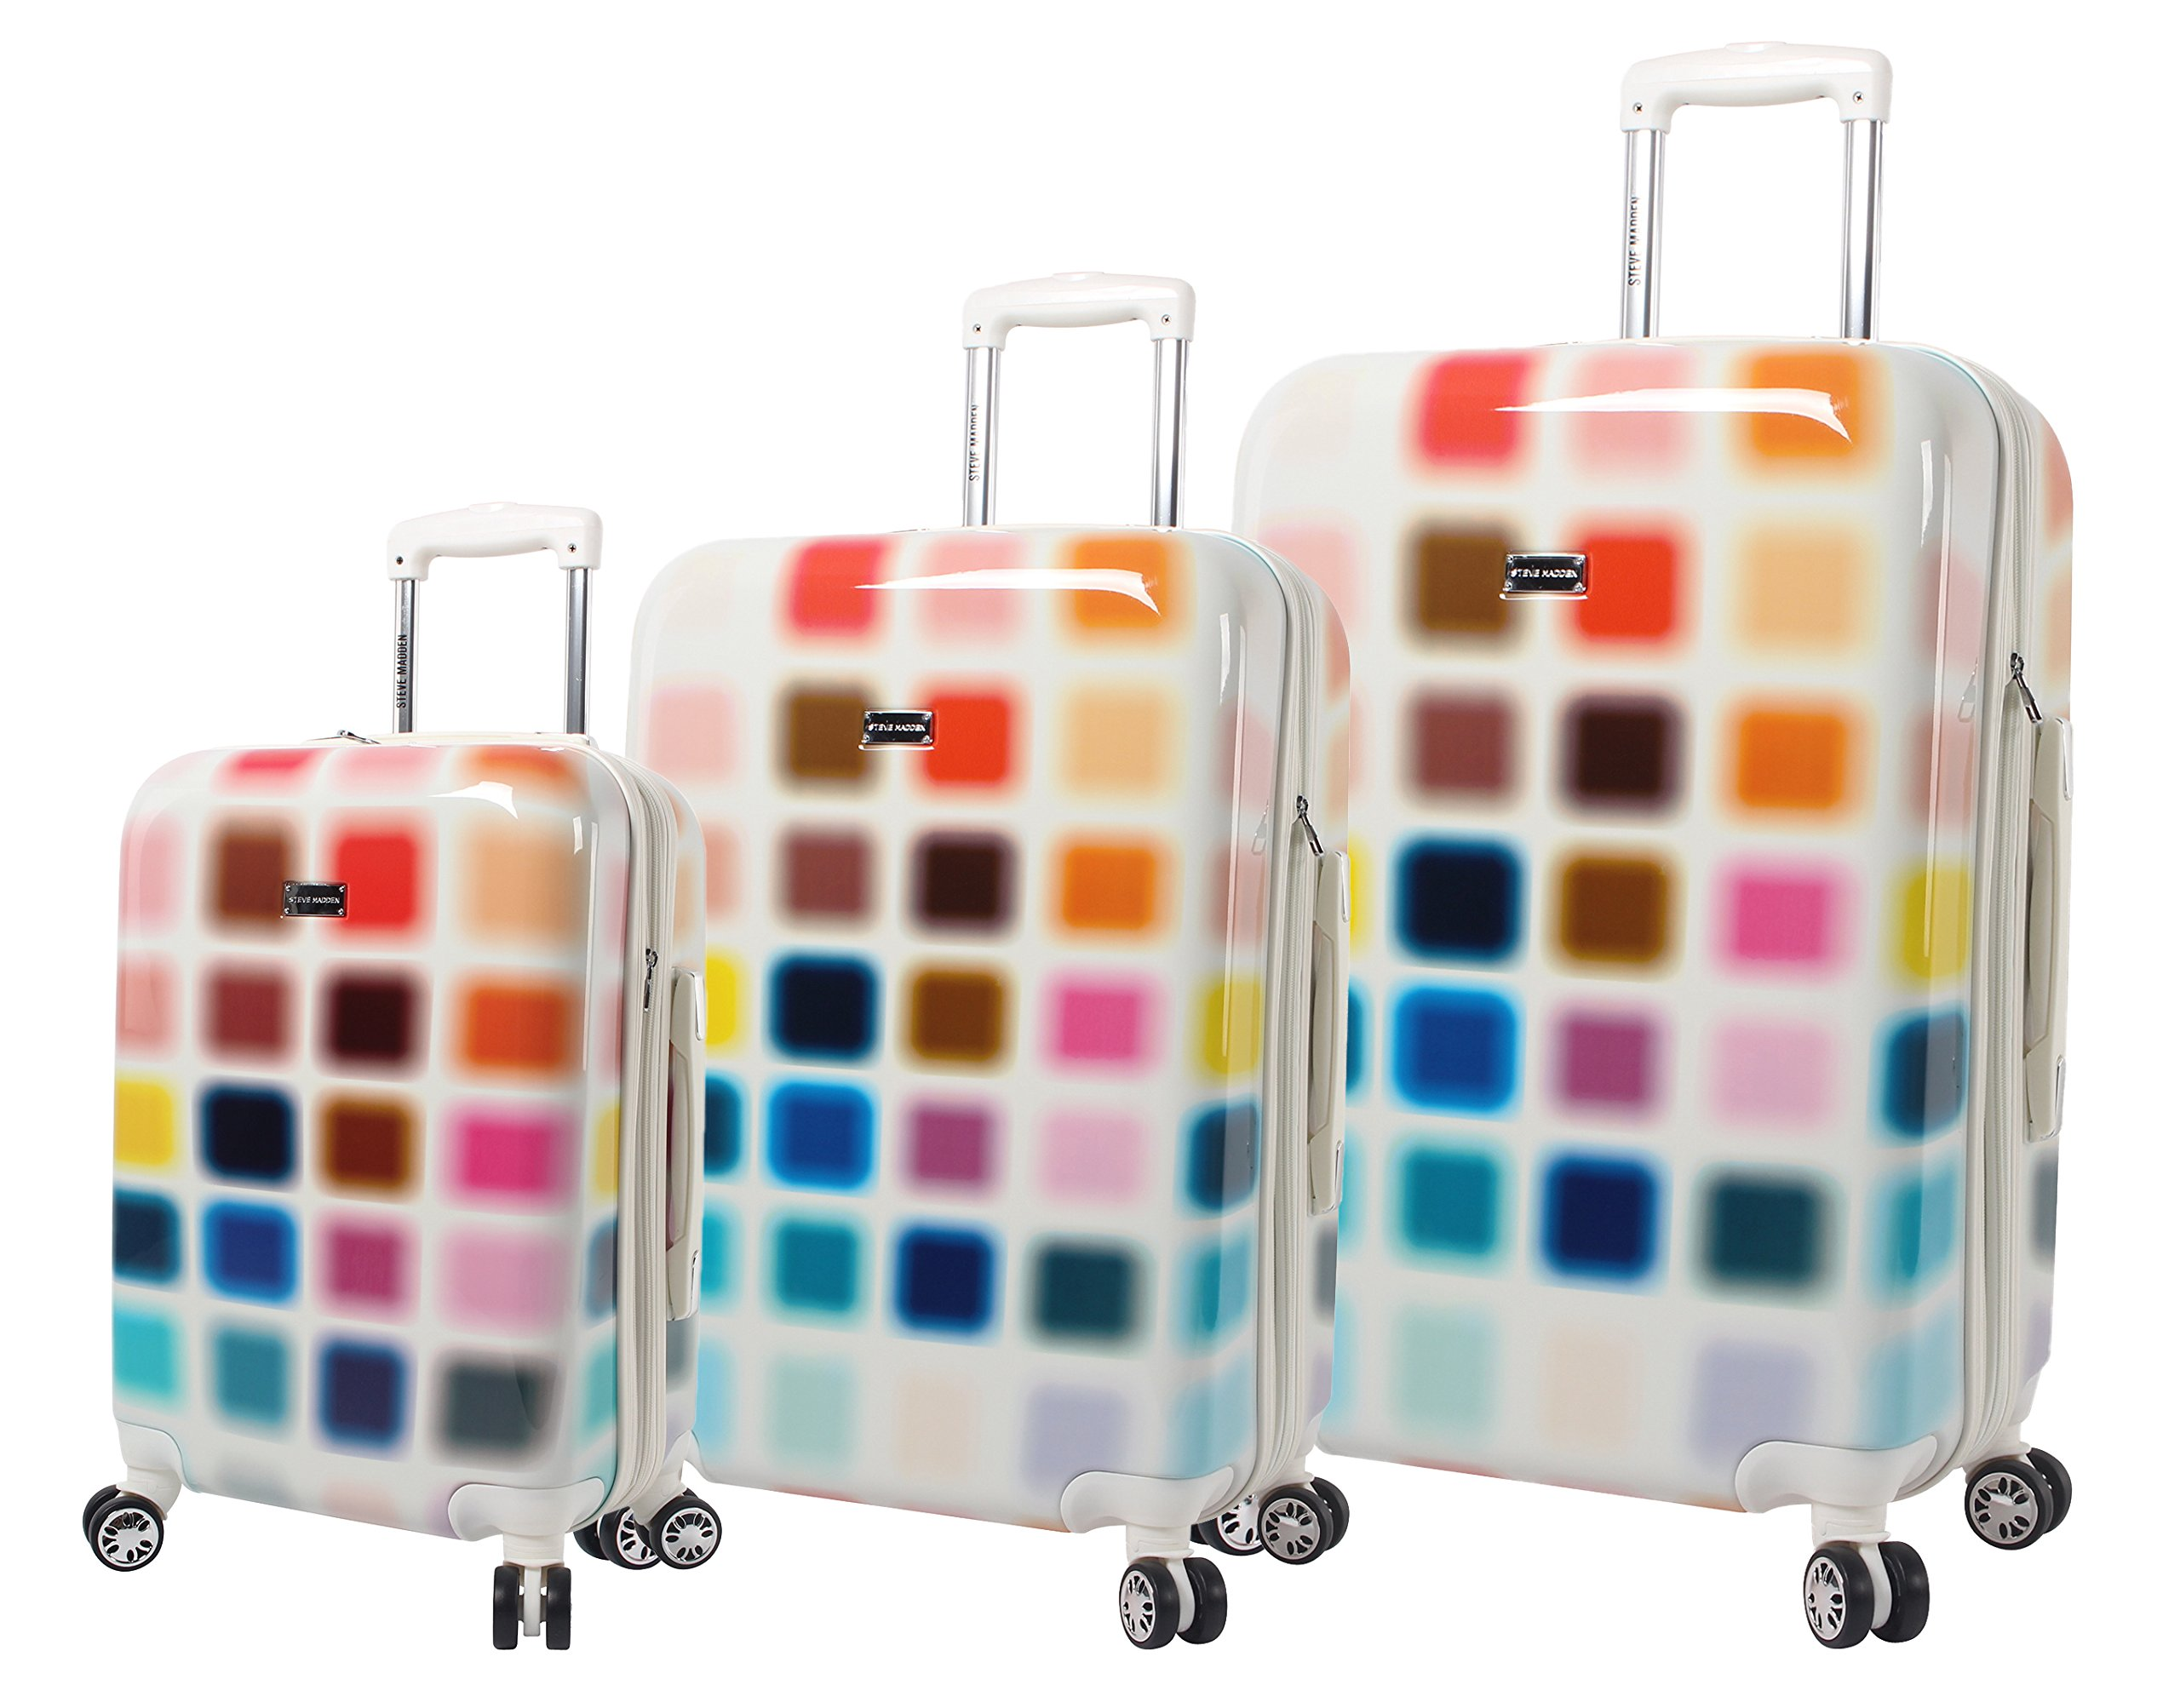 Steve Madden Cubic Luggage 3 Piece Hardside Suitcase With Spinner Wheels by Steve Madden Luggage